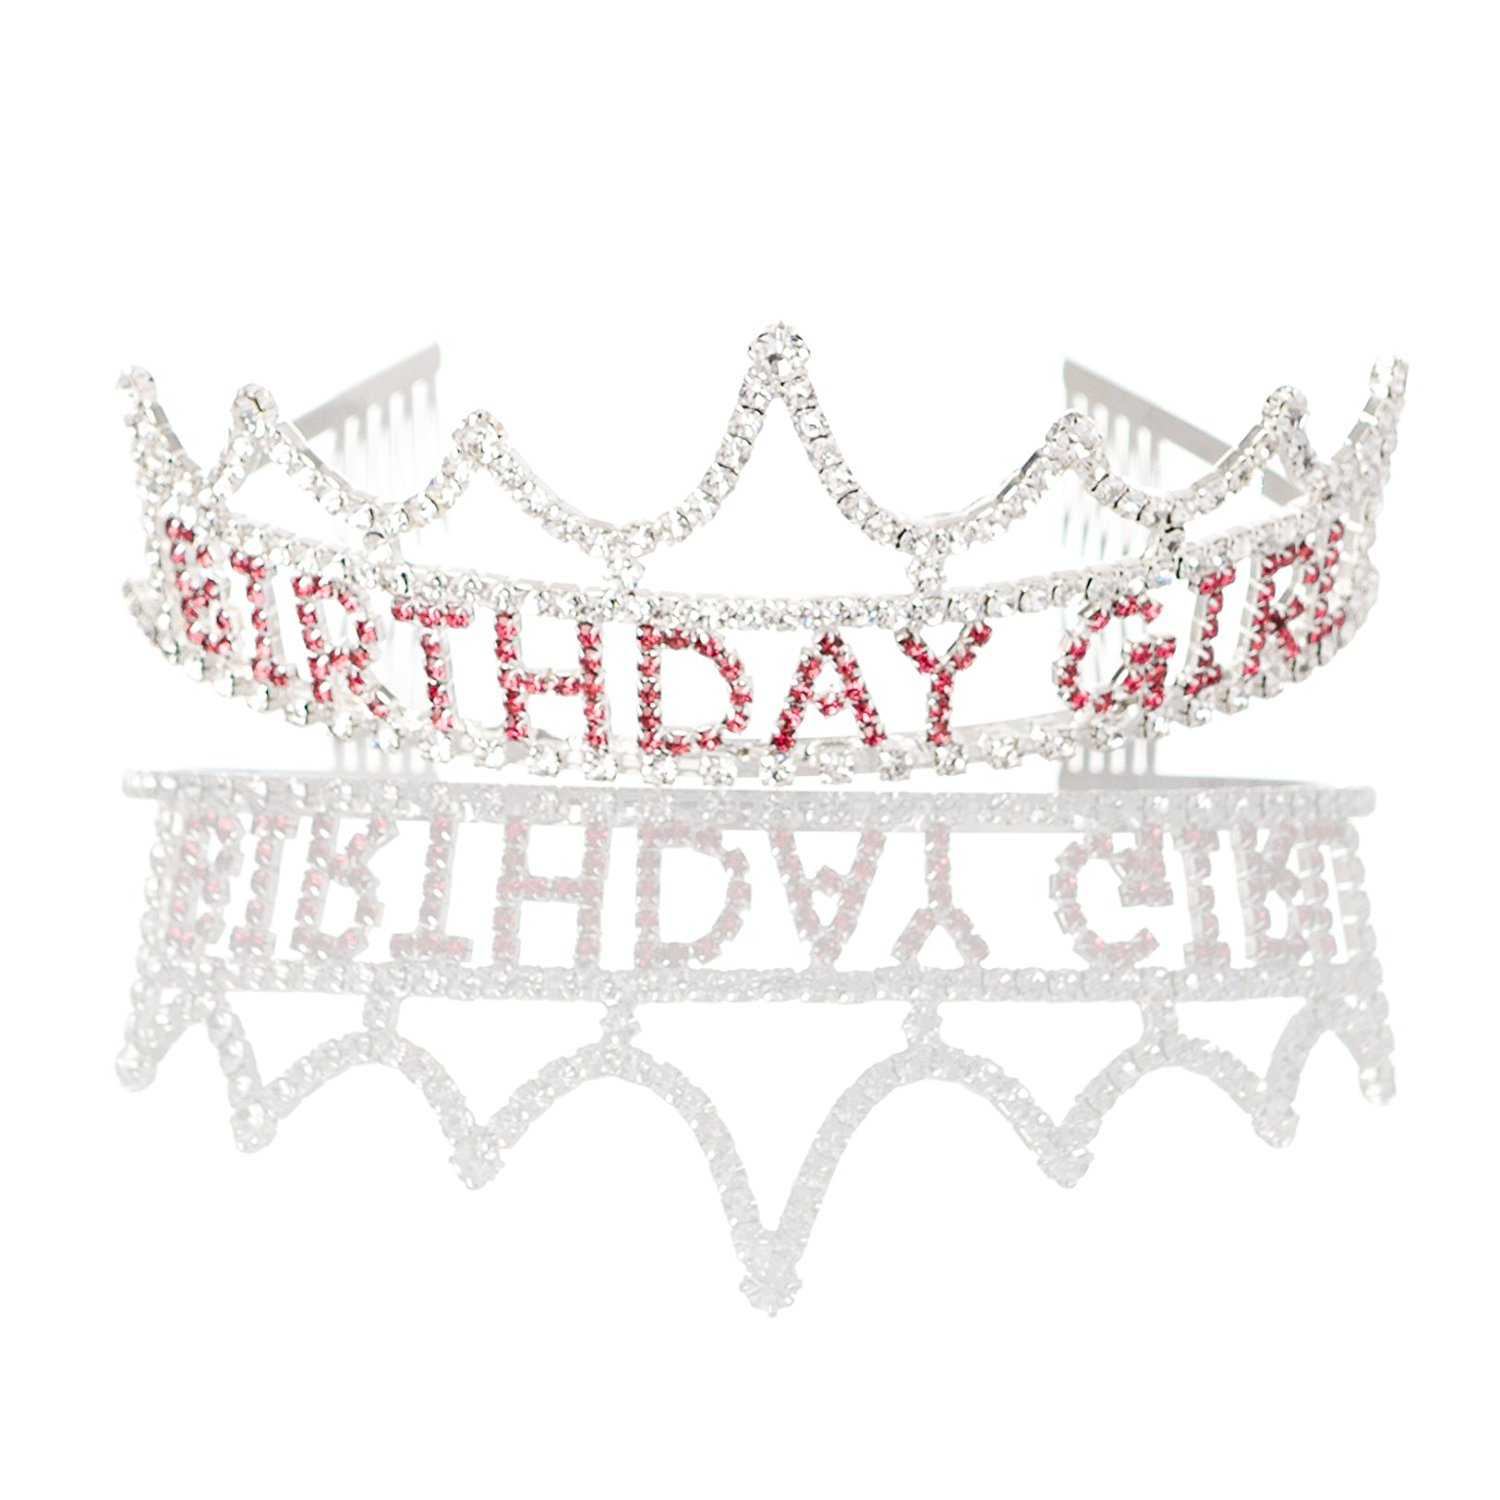 Ella Celebration Birthday Girl Tiara Party Crown Silver Pink Accessories (Tiara)